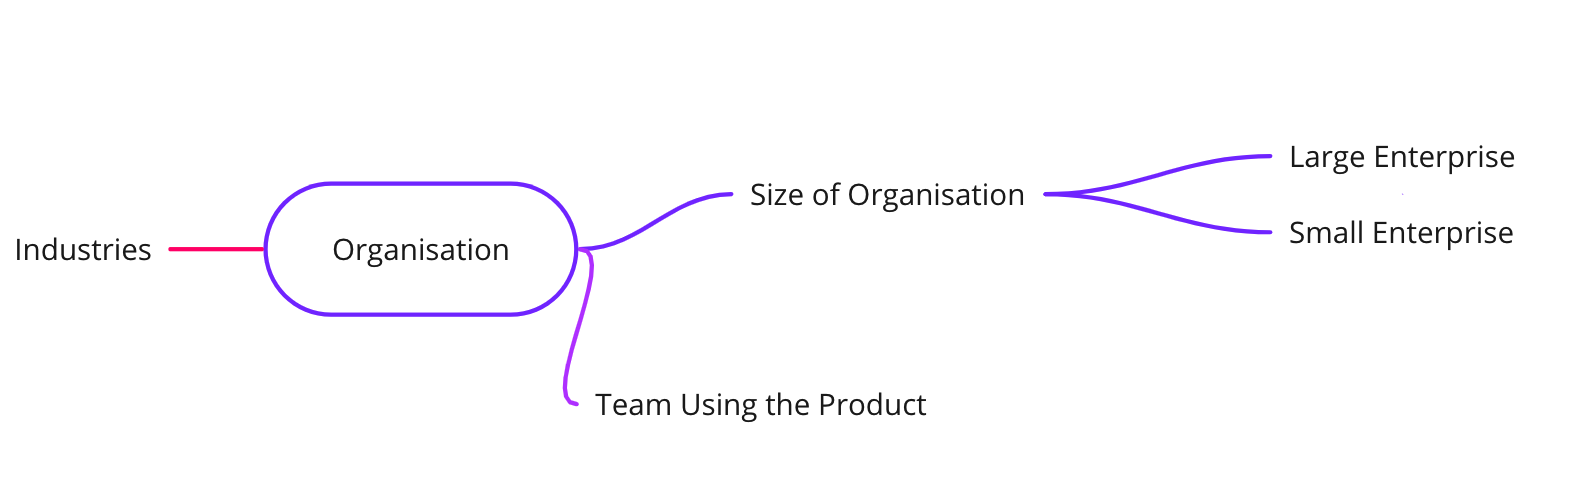 Mindmap of Organisation with sections of industries, size if organisation and team using the product